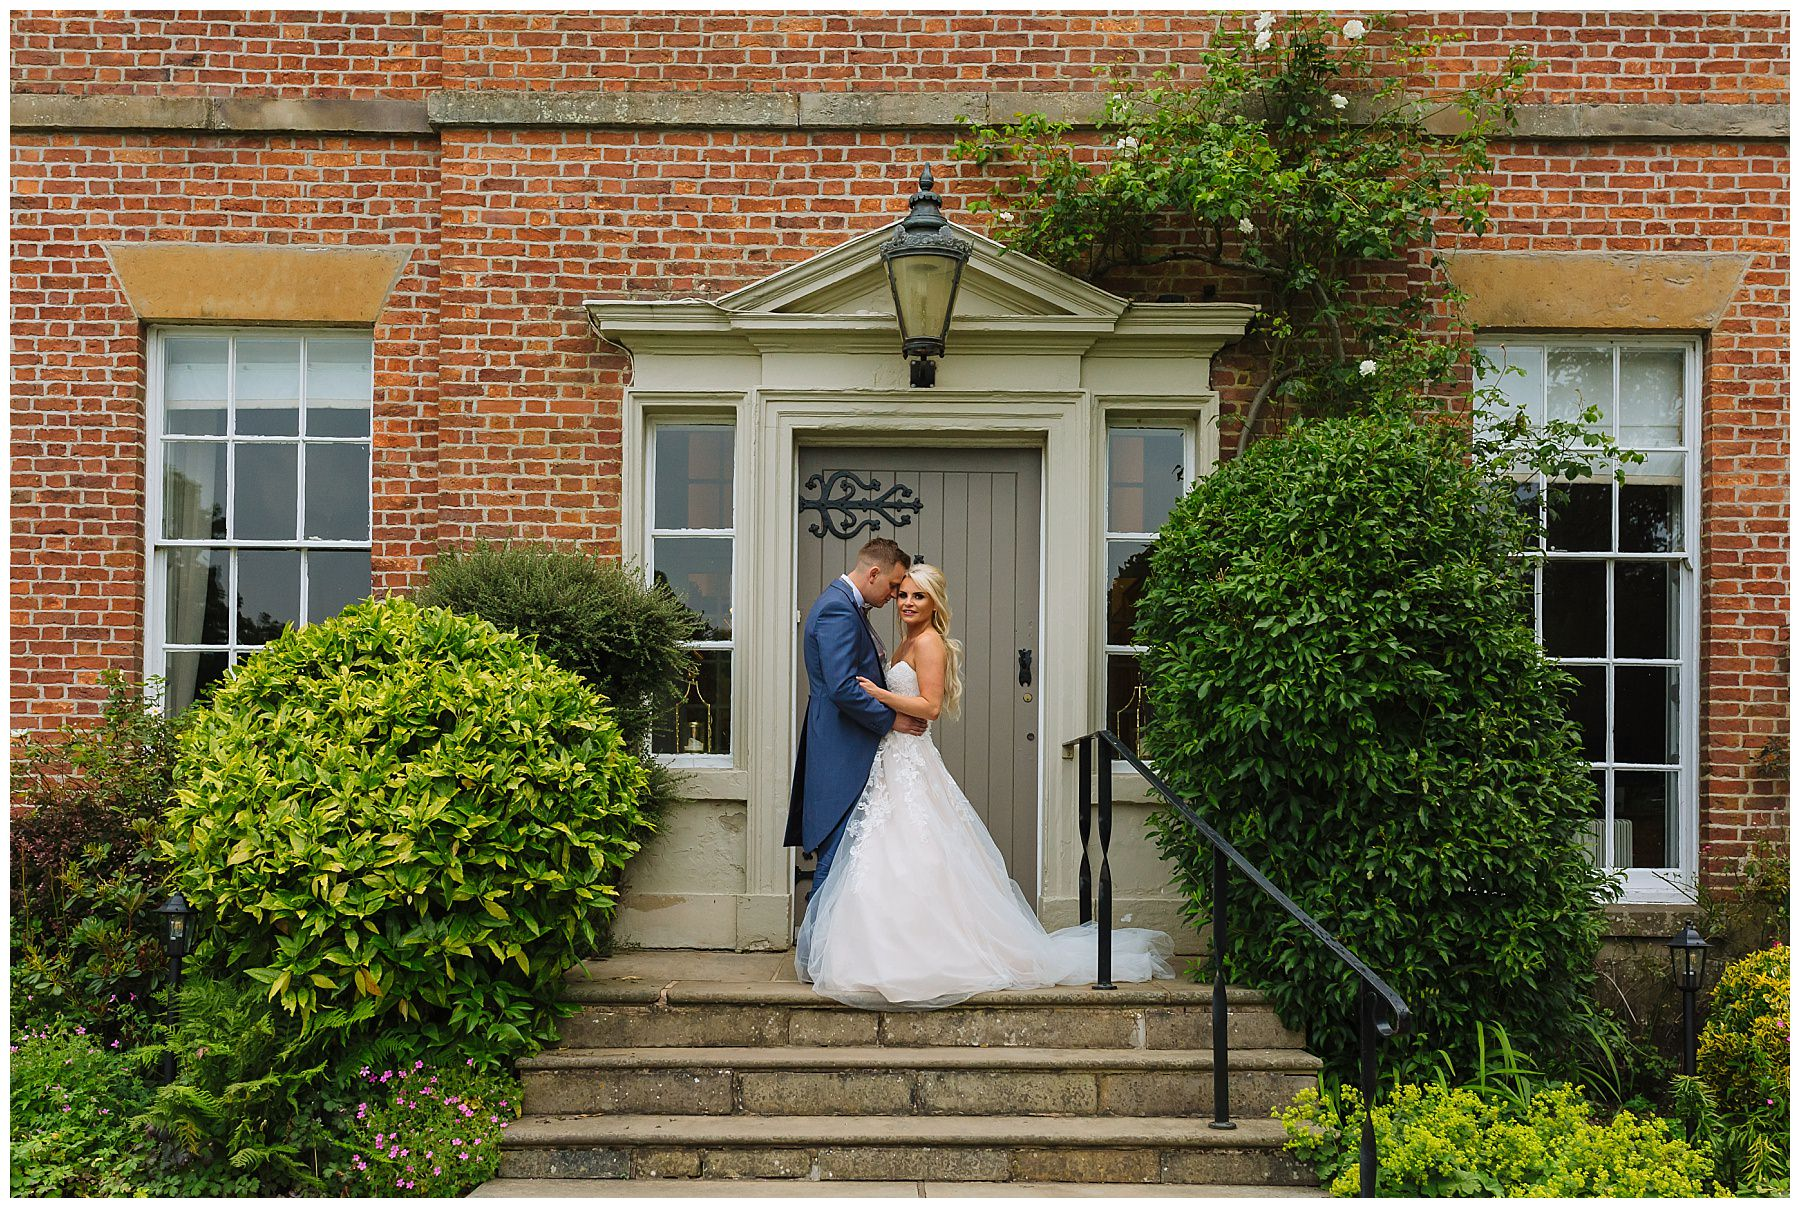 Beautiful bride and groom in front of the house at rivington barn